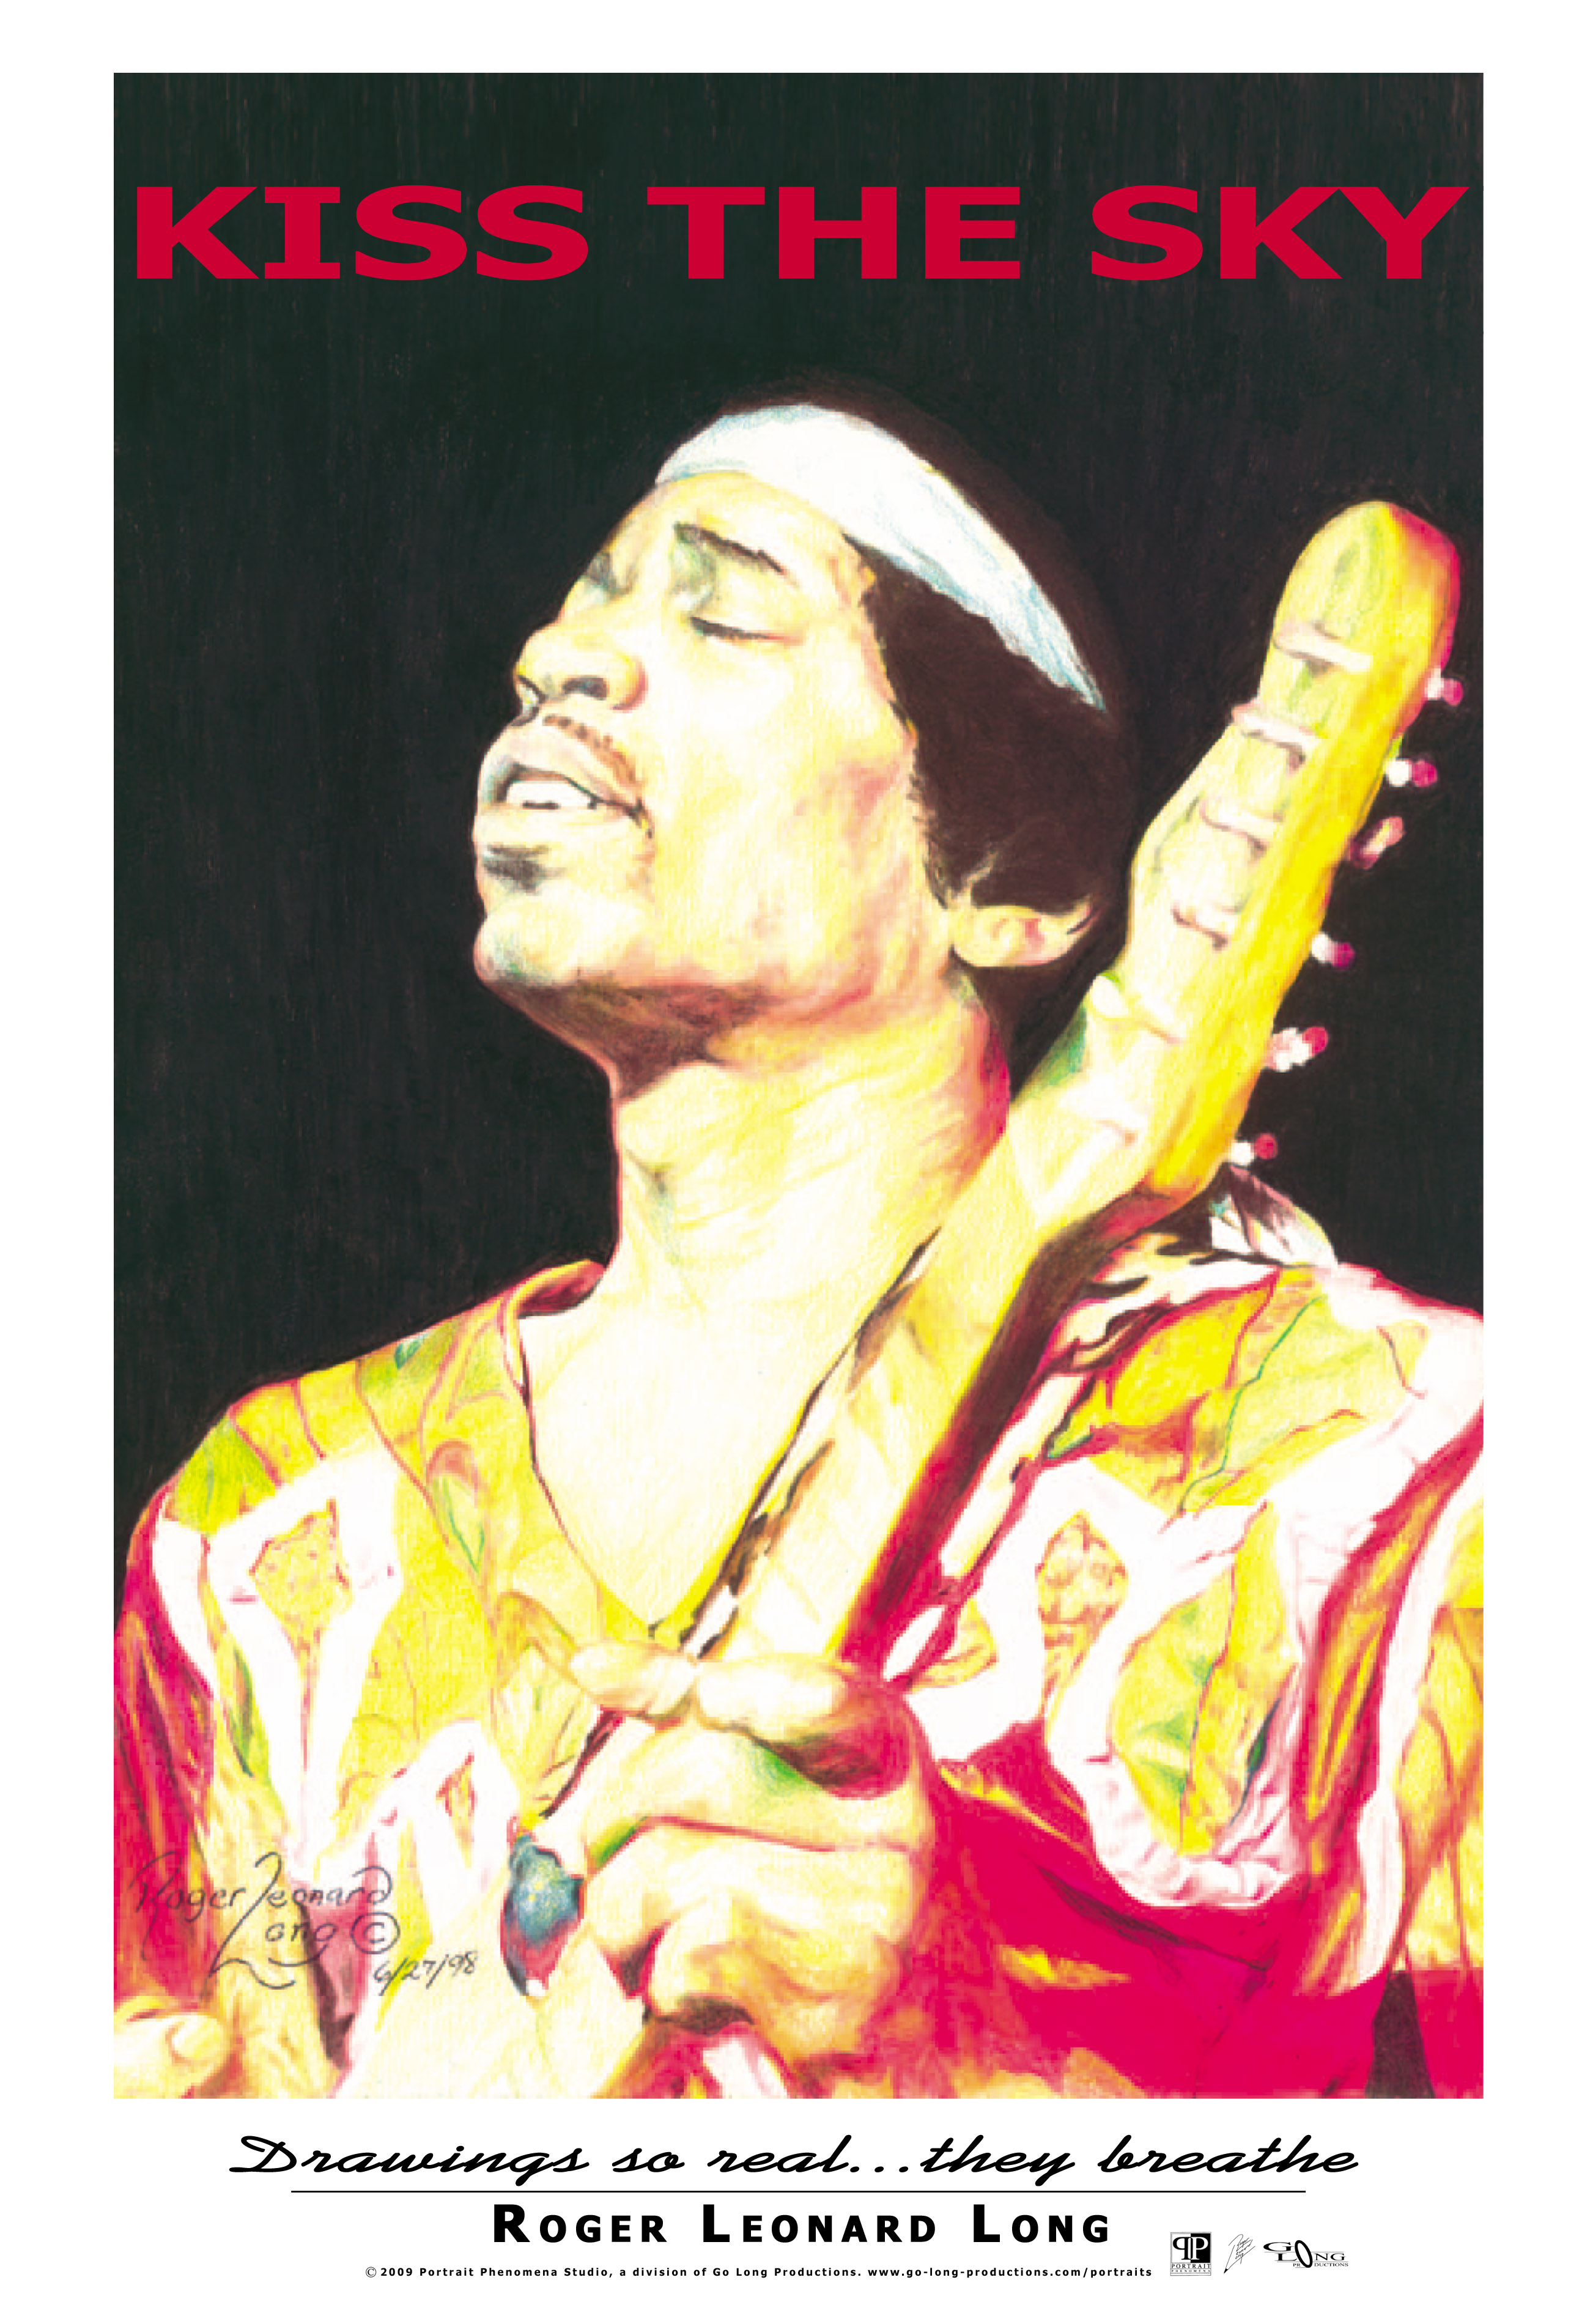 This is an exclusive original poster from Roger Leonard Long. It features his photo realistic portrait drawing of Jimi Hendrix. The original portrait was created with color pencil. This high-quality poster captures the realism of that original work. Your poster will be delivered shrink-wrapped and ready for easy mounting/framing.